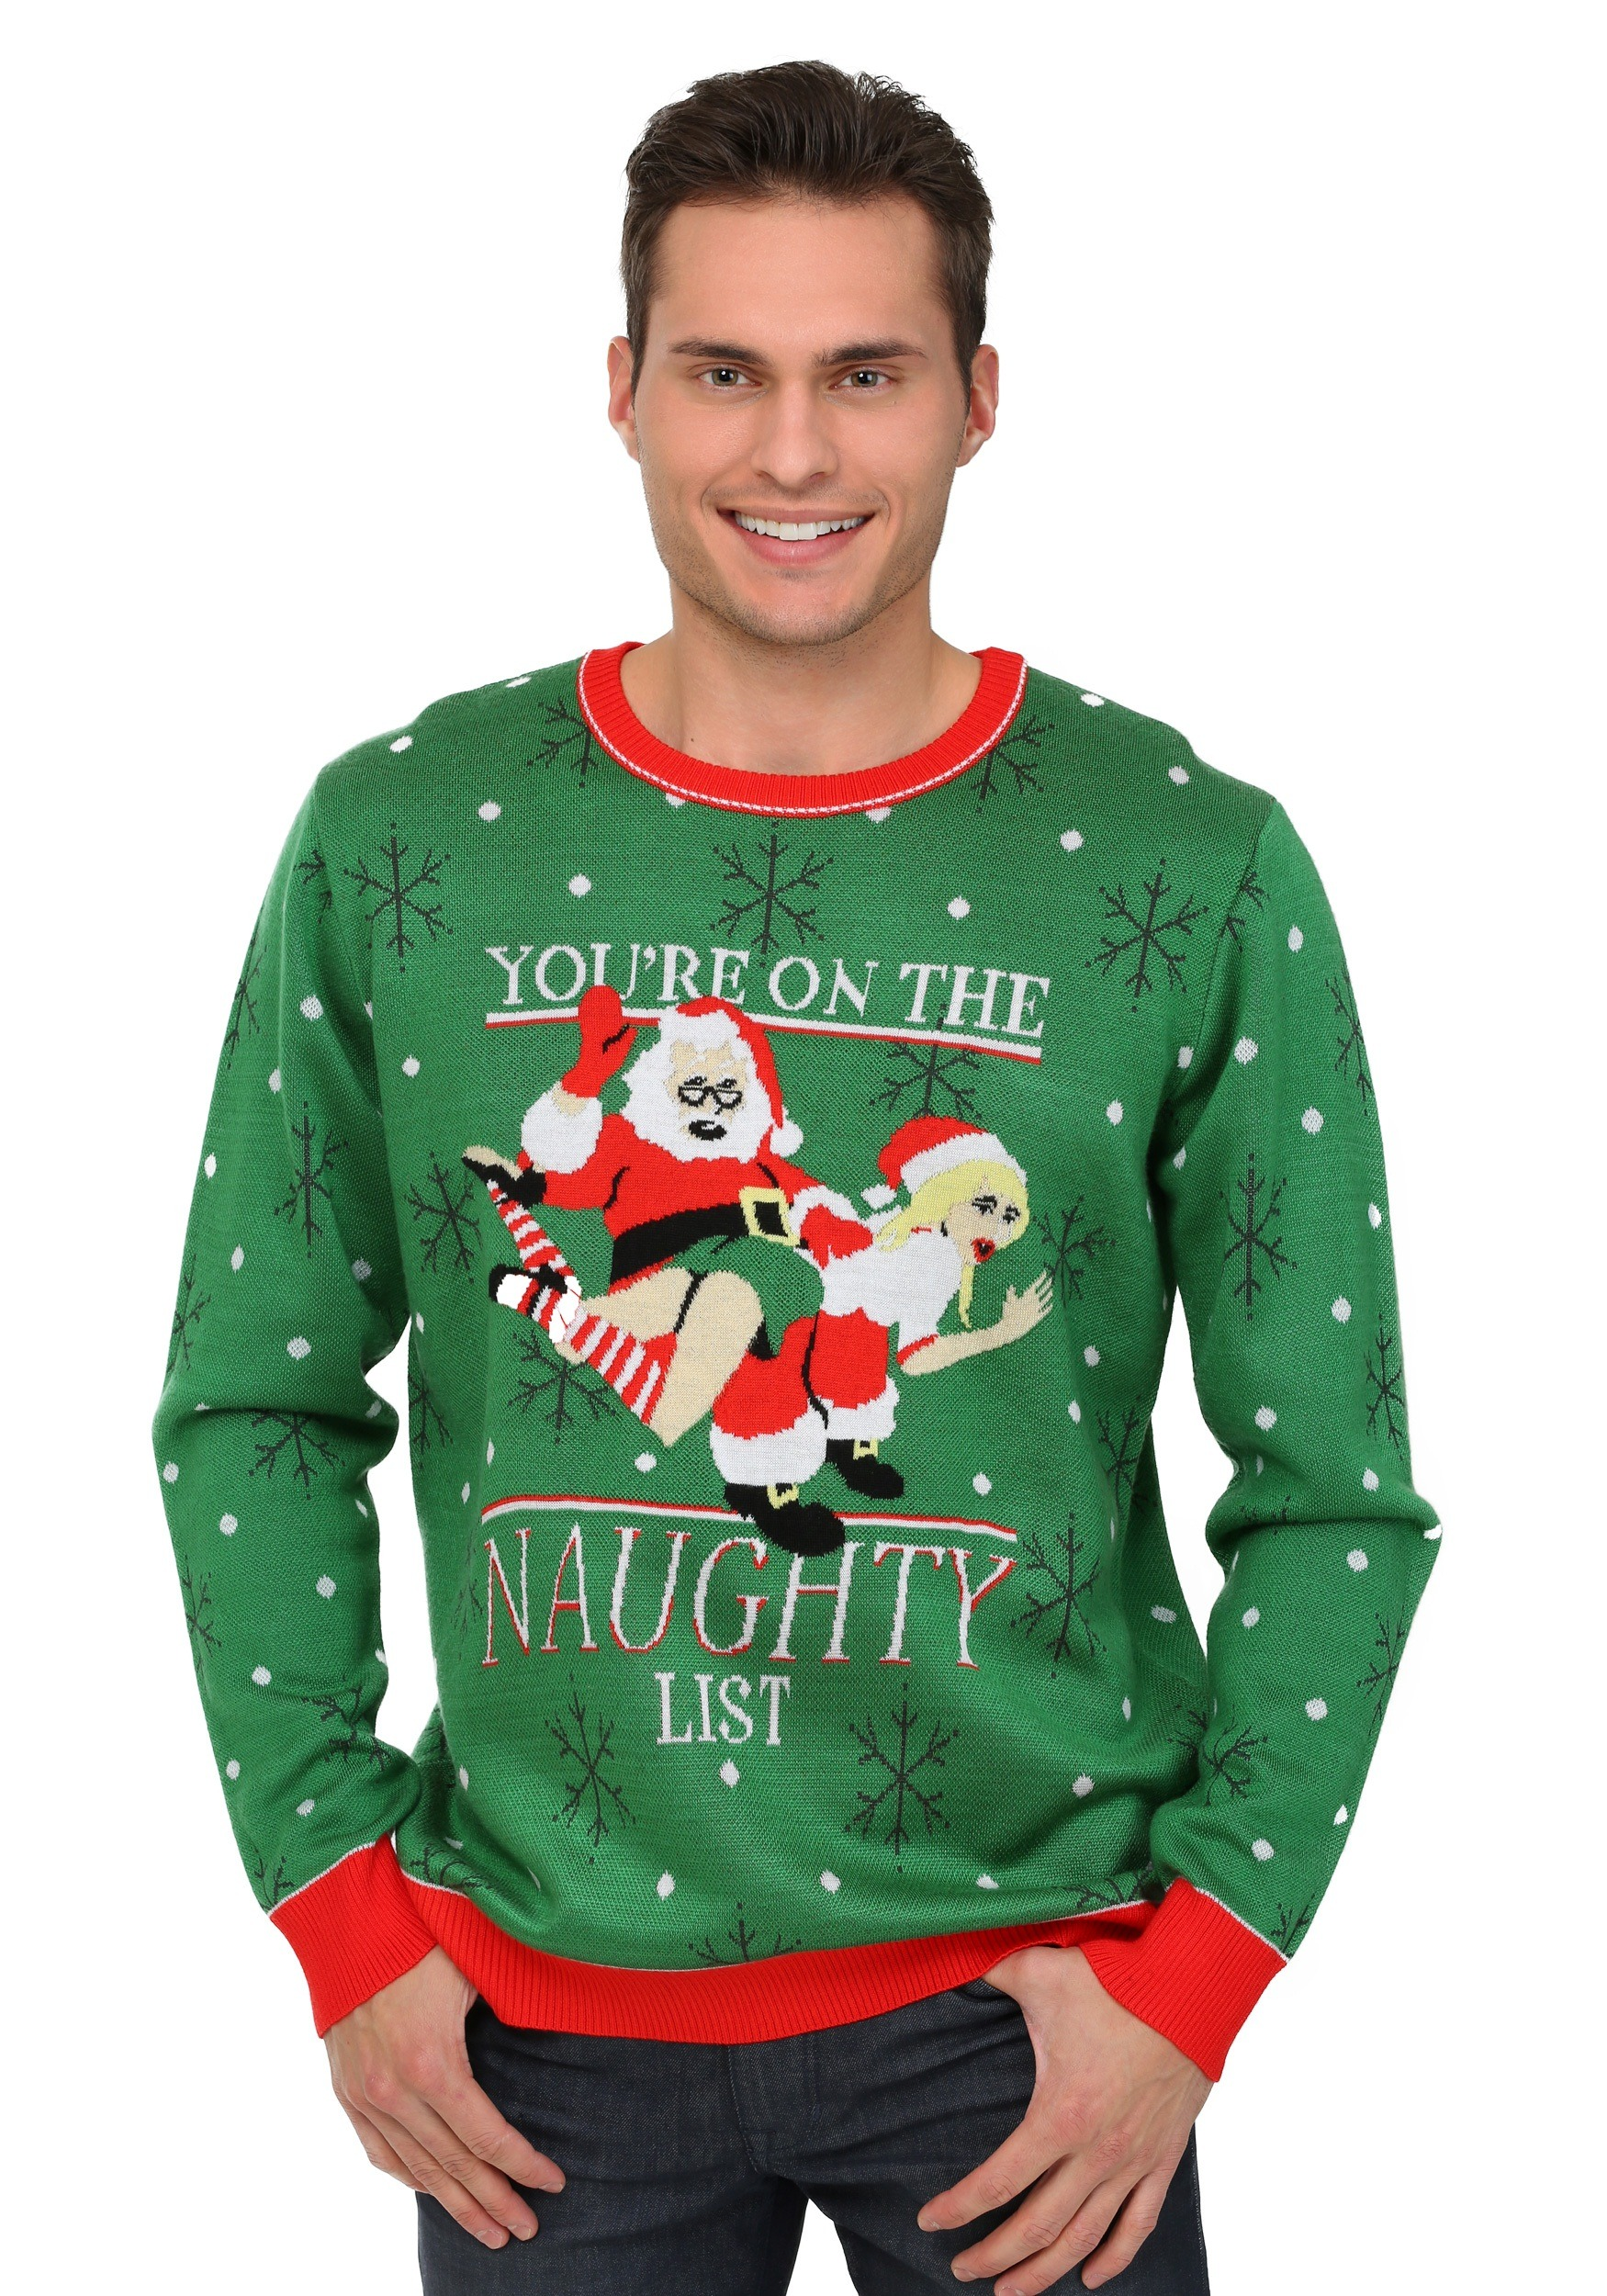 2a160b7b04536 Men s Naughty List Christmas Sweater